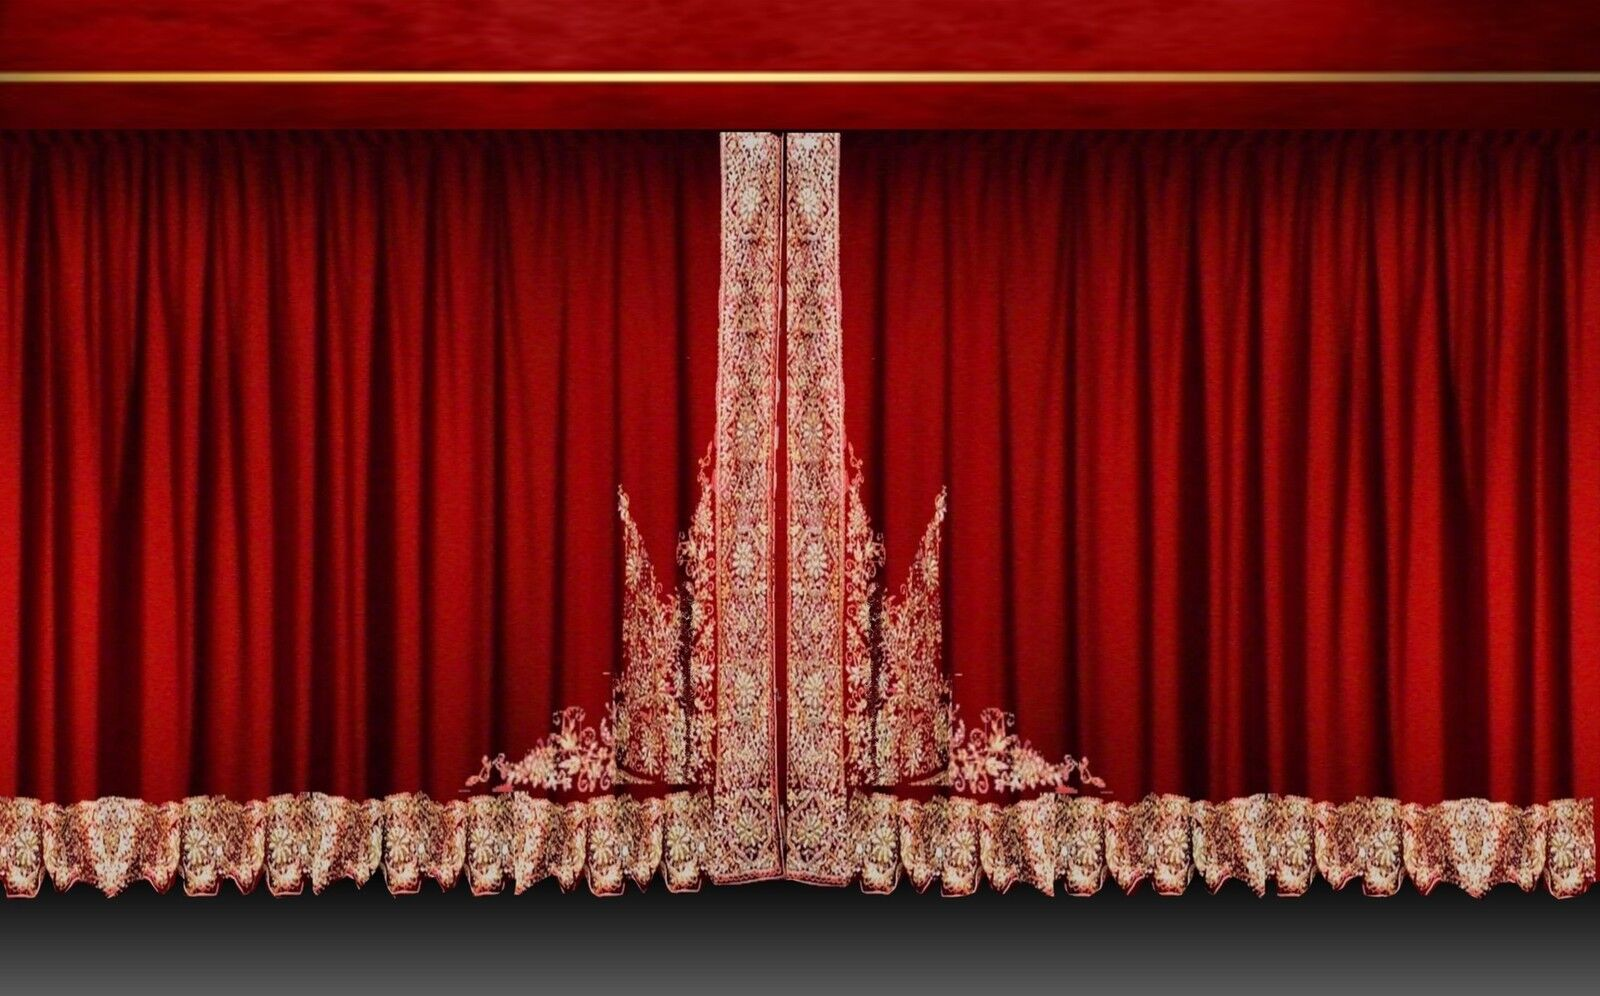 U Shaped Shower Curtain Rod Stage Curtains for Dance